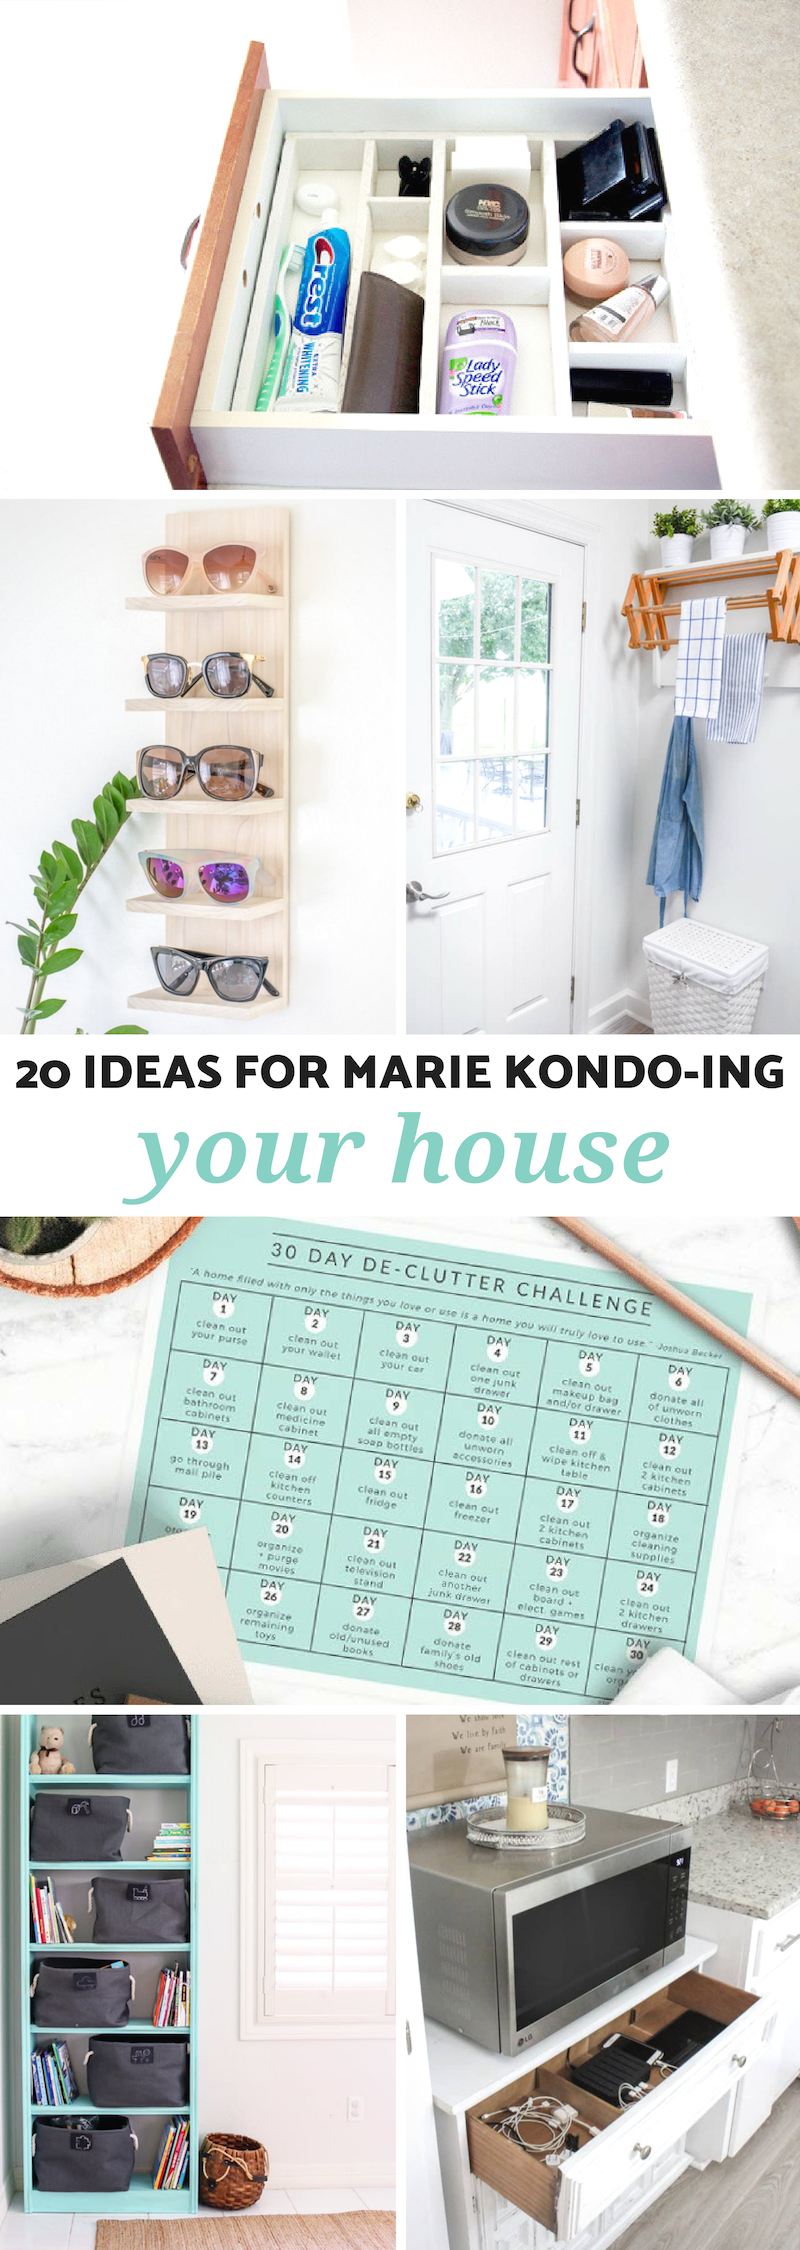 Ideas for Marie Kondo-ing Your House